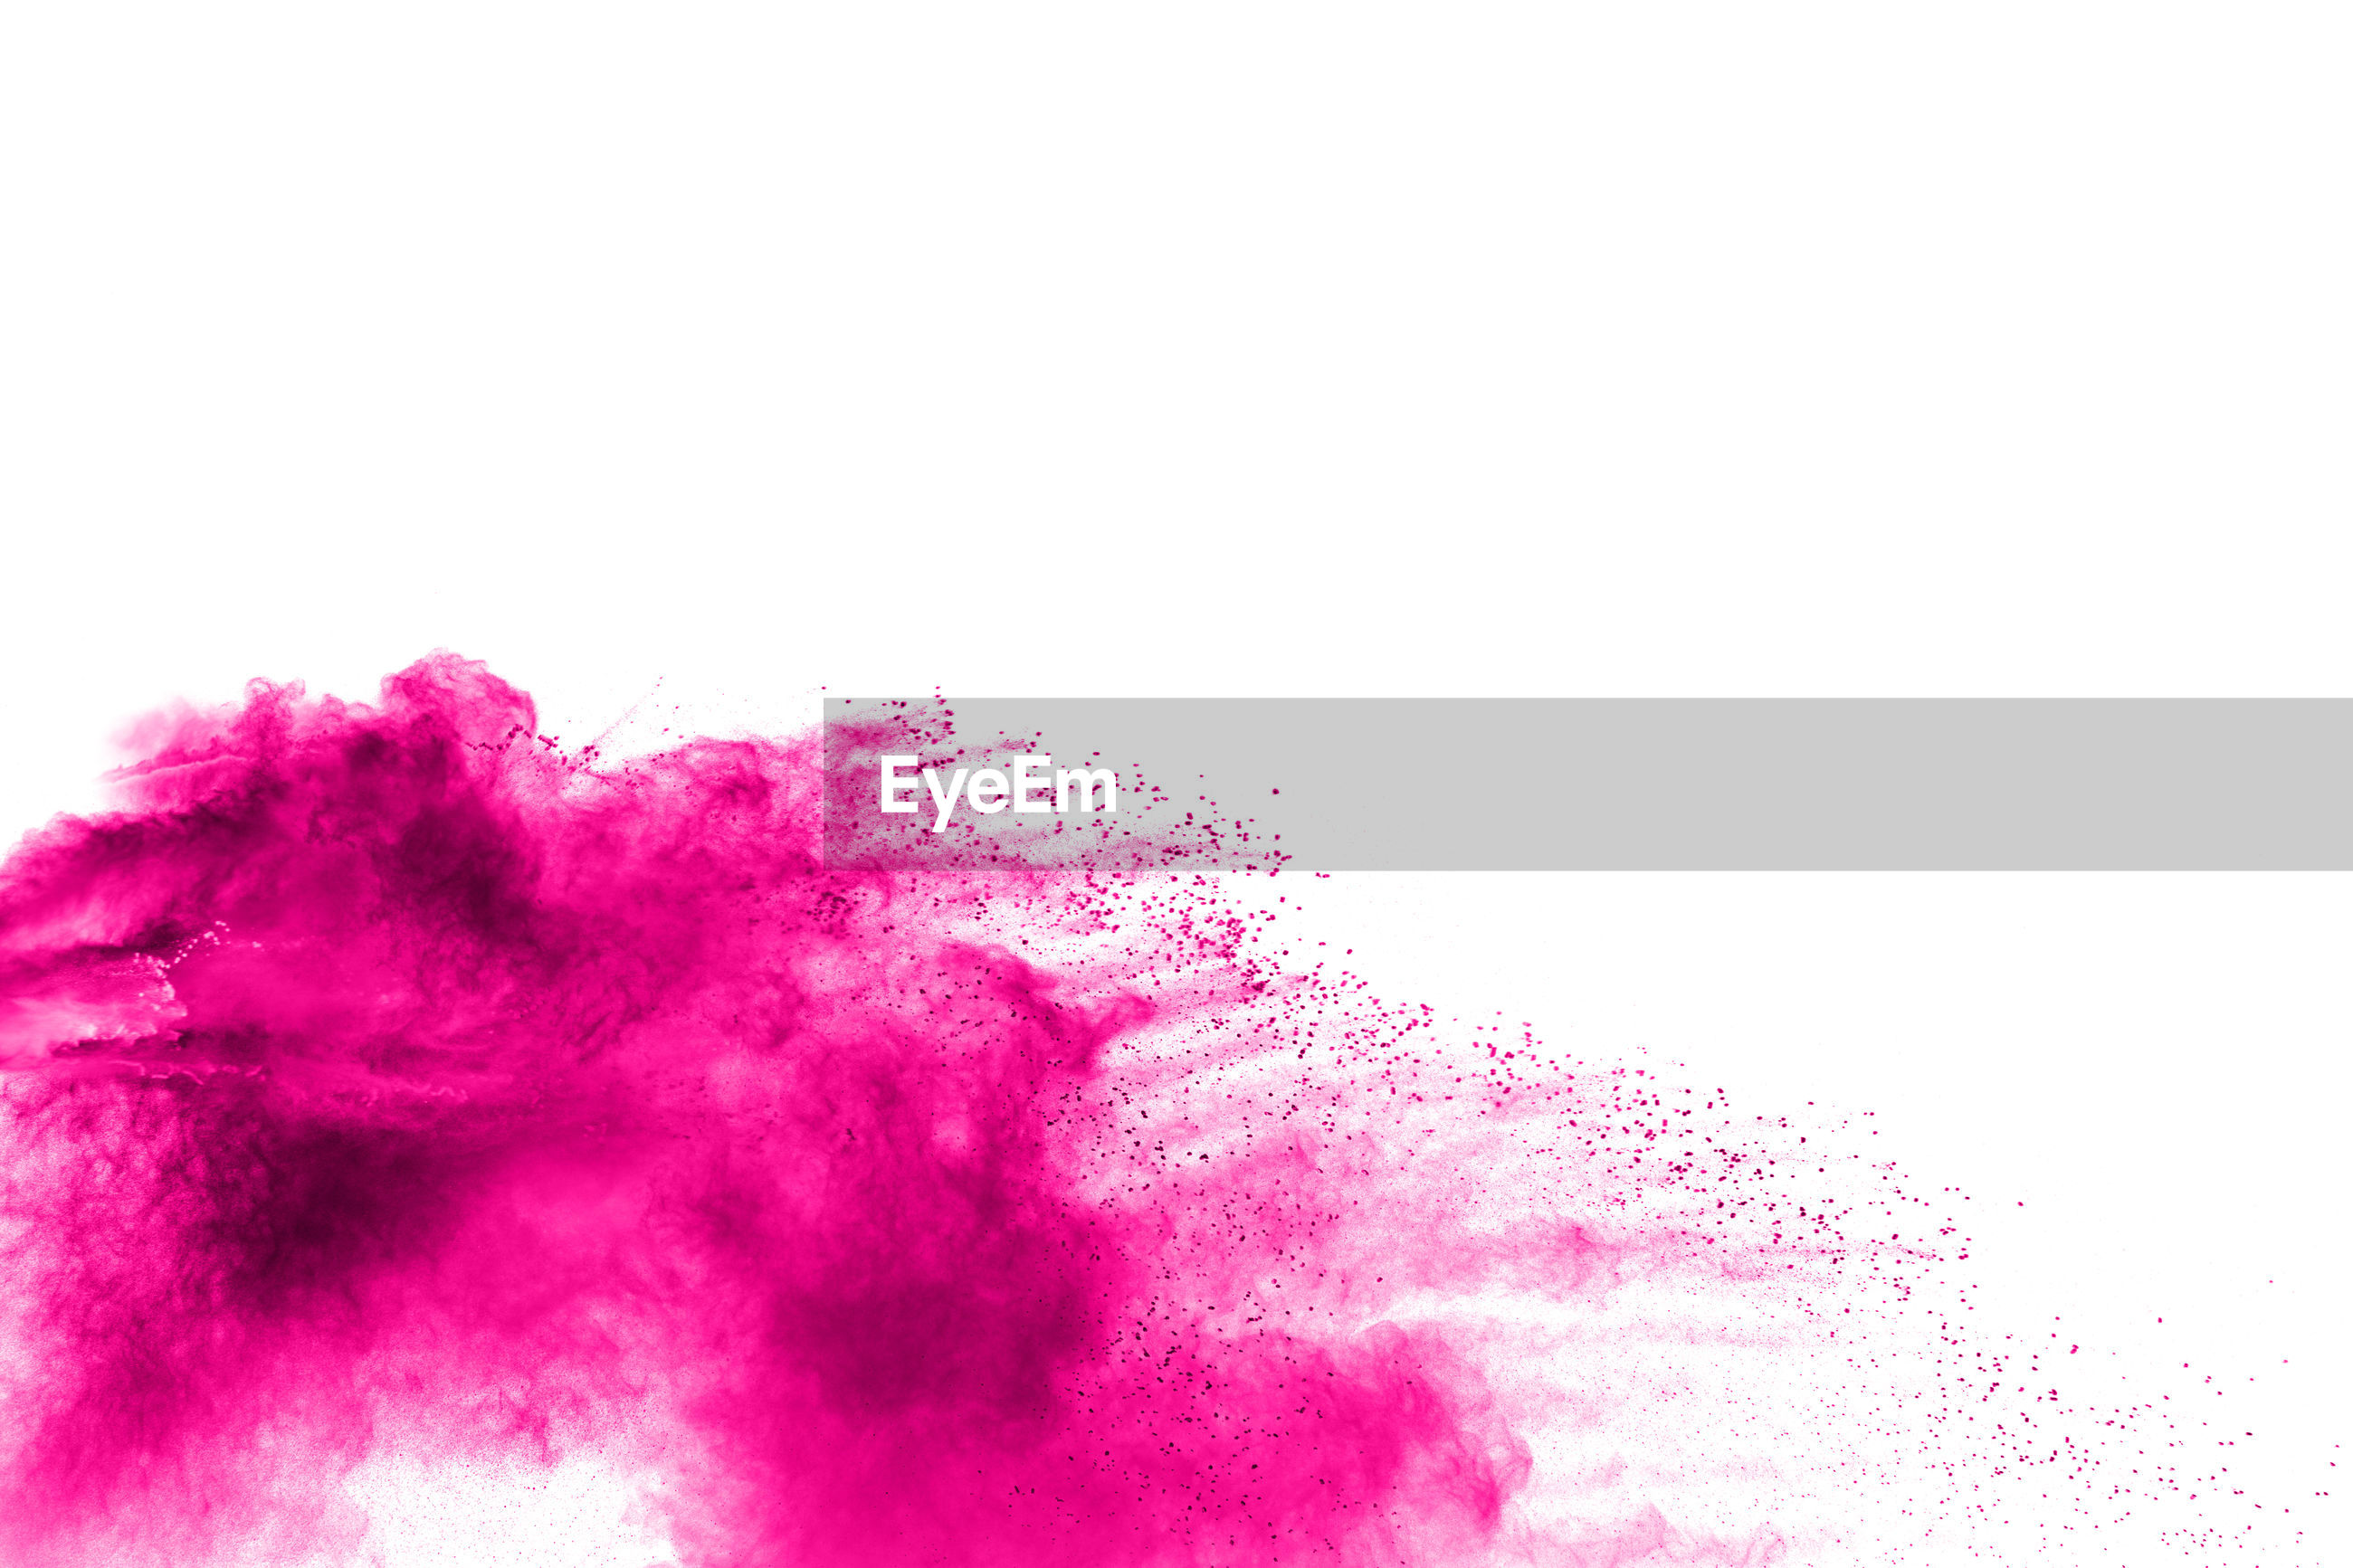 Pink powder paint exploding against white background